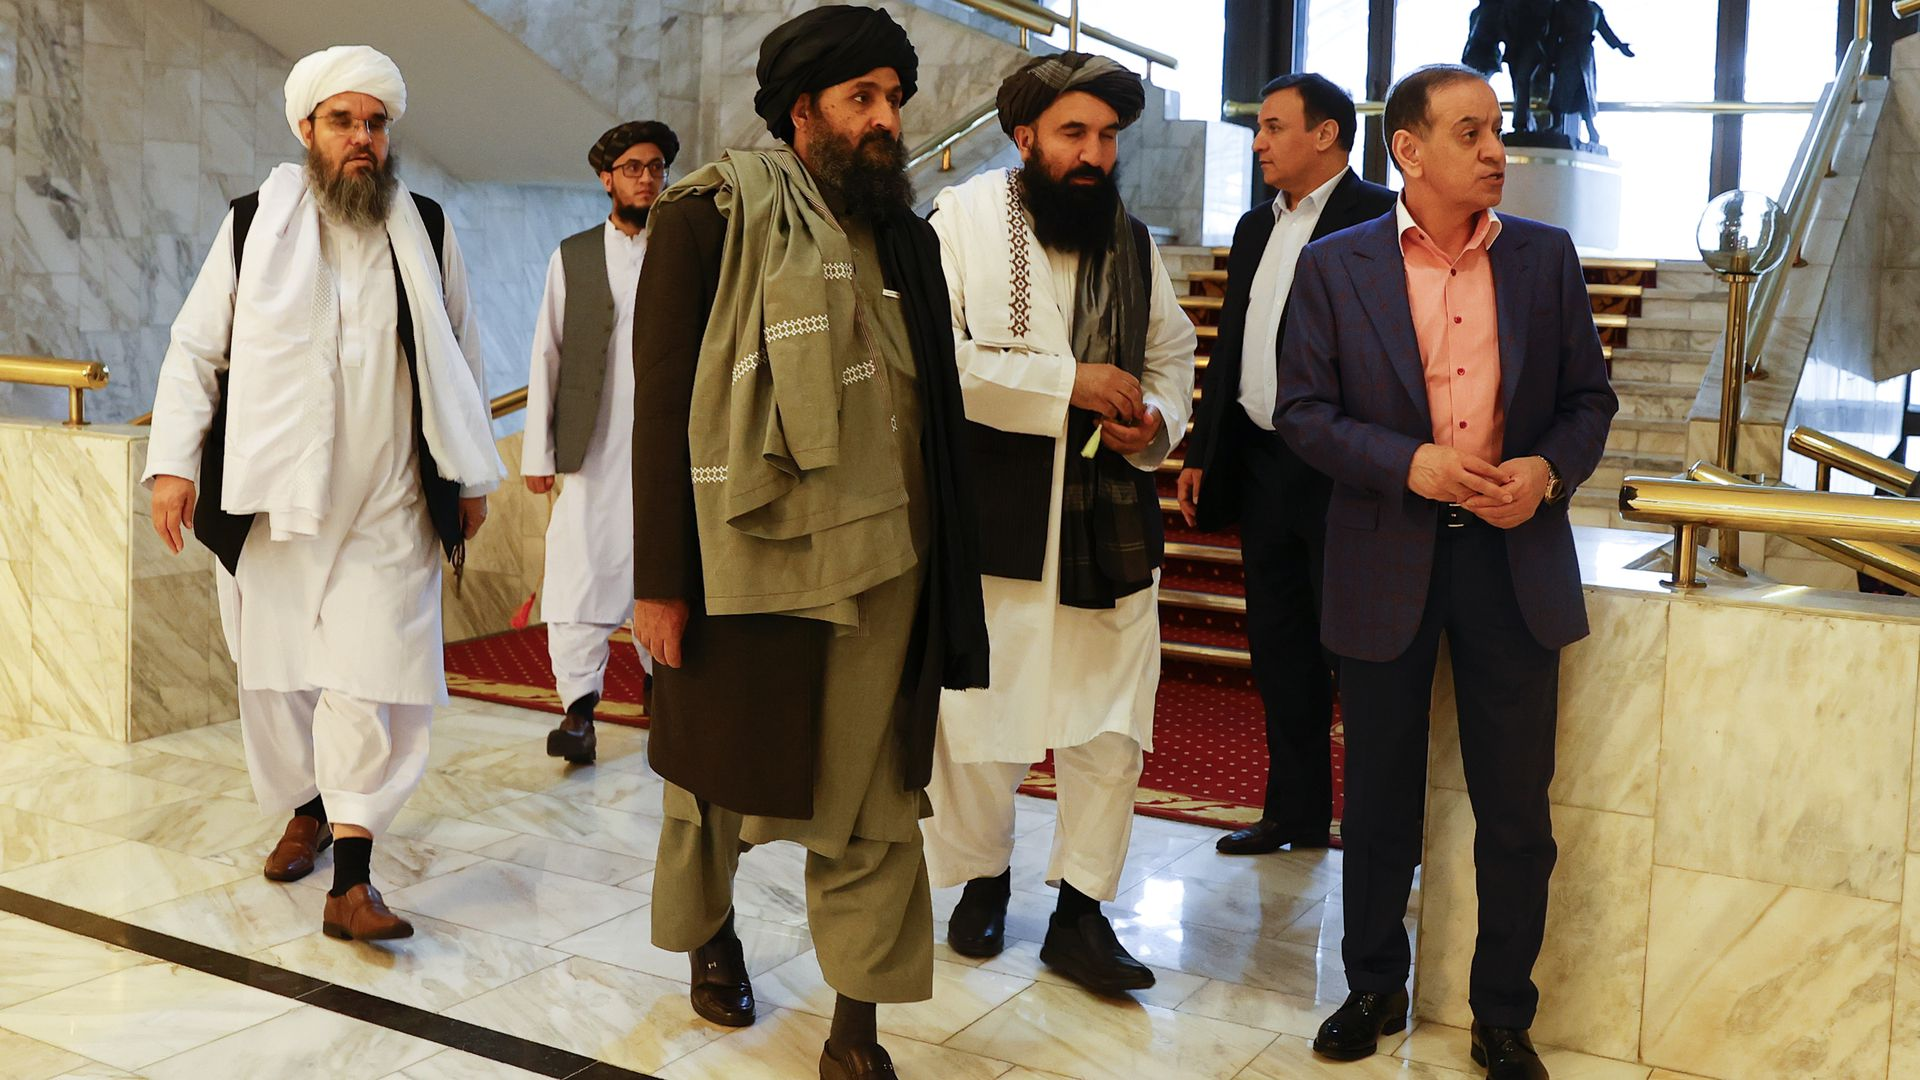 Taliban delegation meets with special envoy in Moscow - Axios